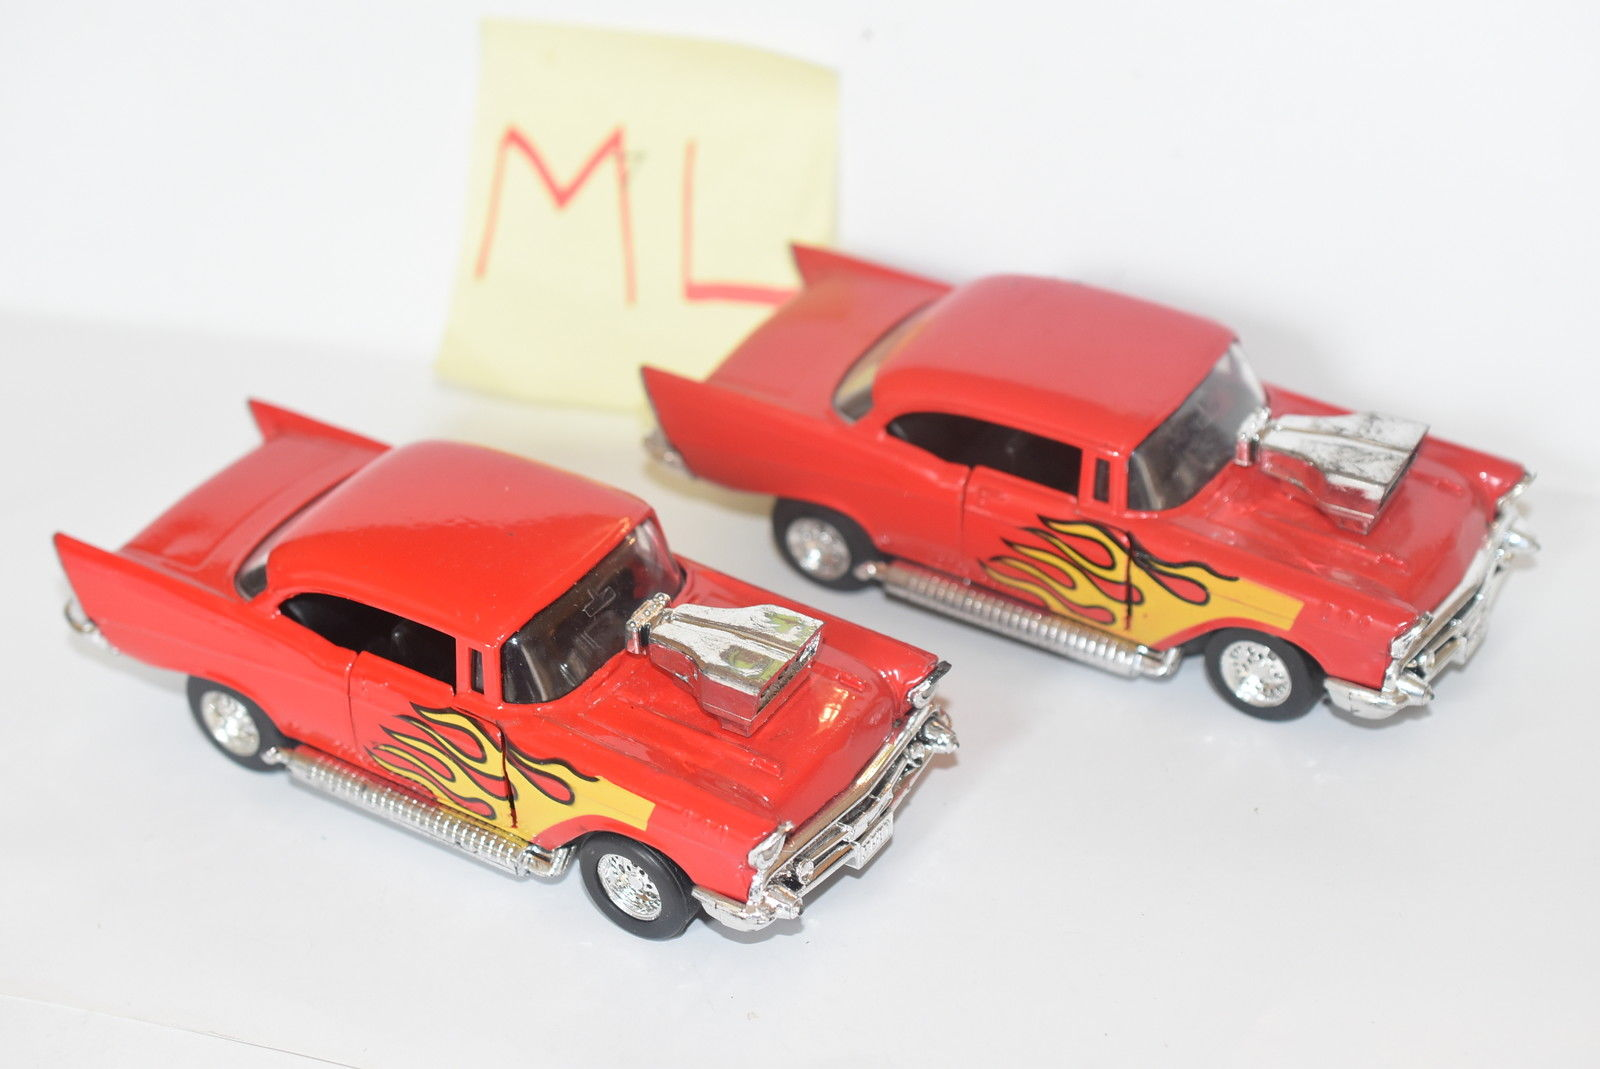 MAJORETTE LOT OF 2 LOOSE HOT RODS '57 CHEVY RED W/ FLAME TAMPO SCALE 1/35